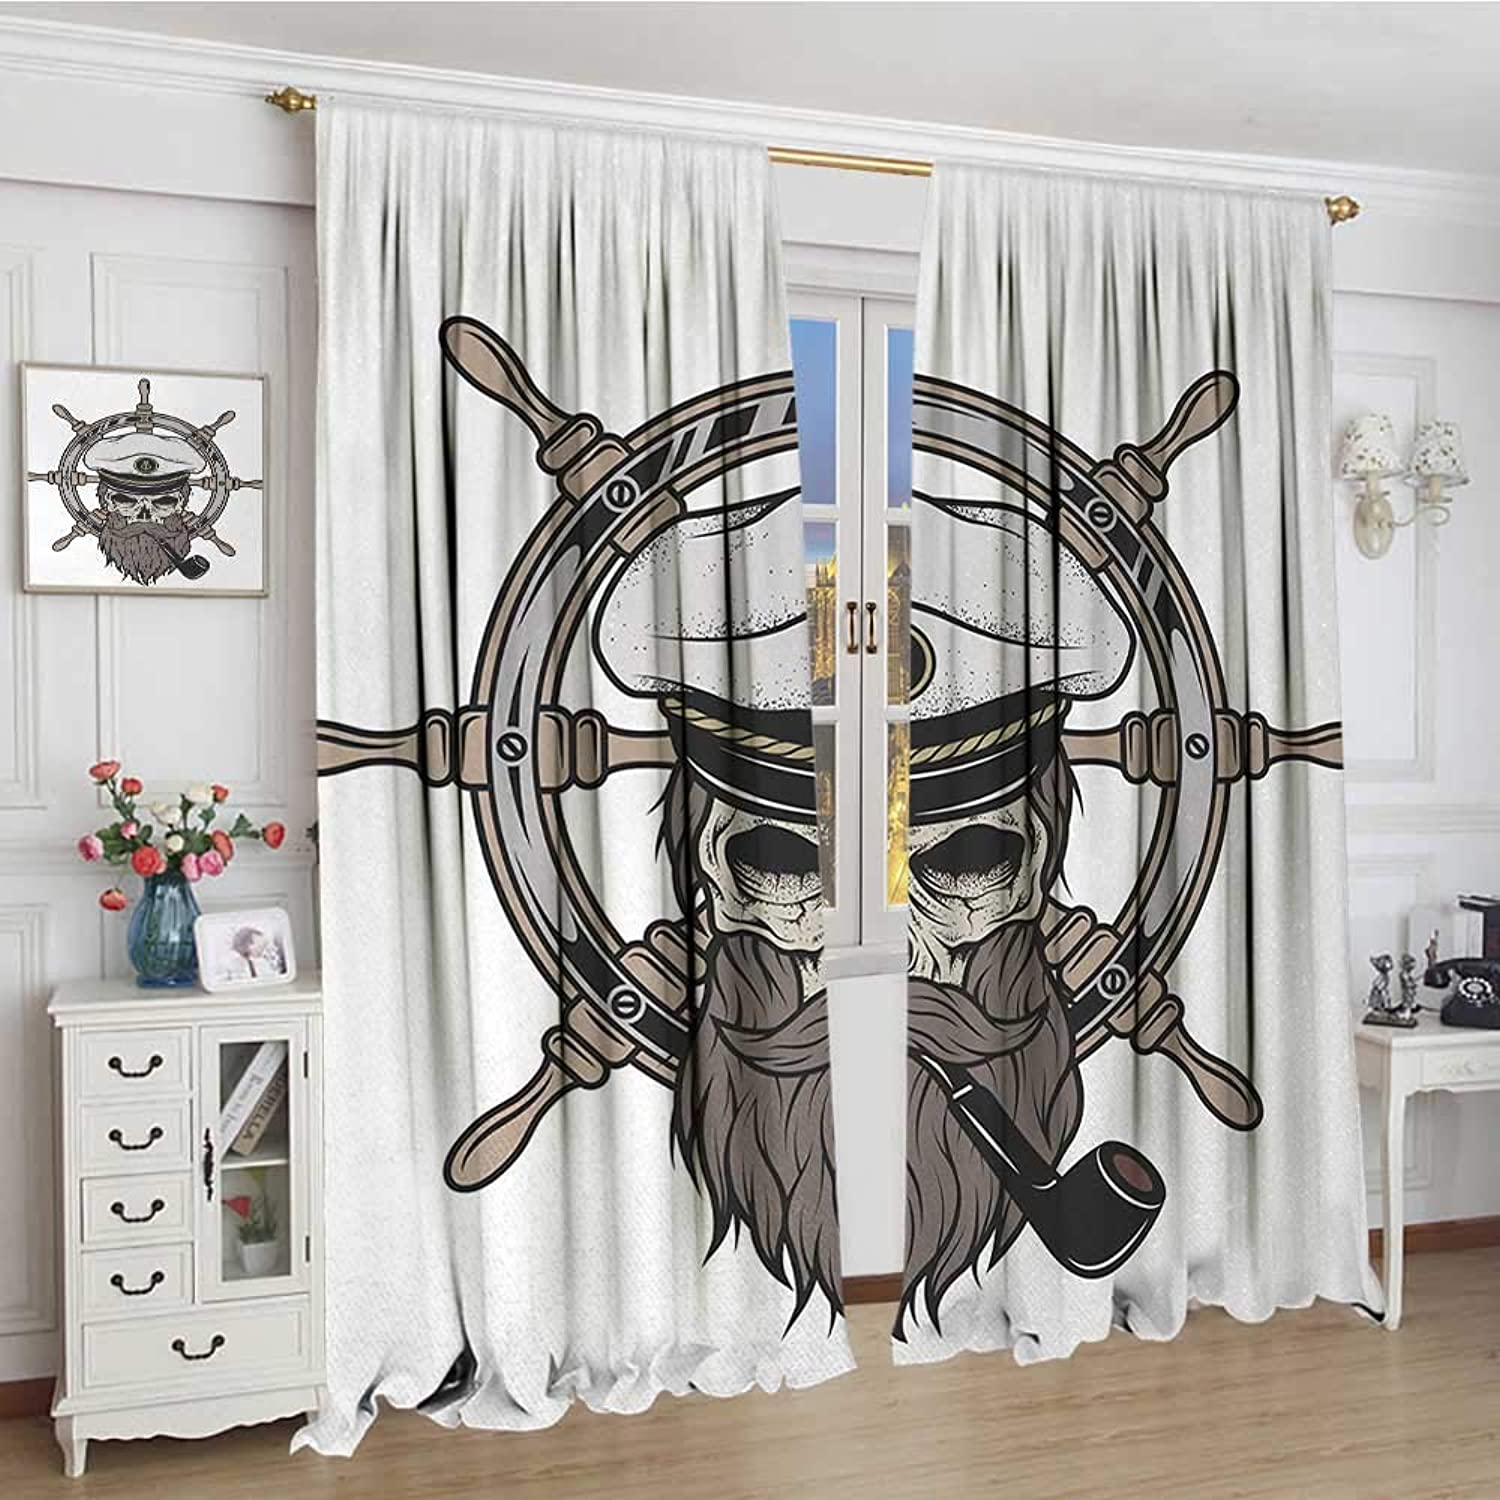 Smallbeefly Skull Blackout Window Curtain Captain Pirate Skull in Sailor Hat with Beard and Pipe Nautical Theme Print Patterned Drape for Glass Door 96 x72  Brown White Grey